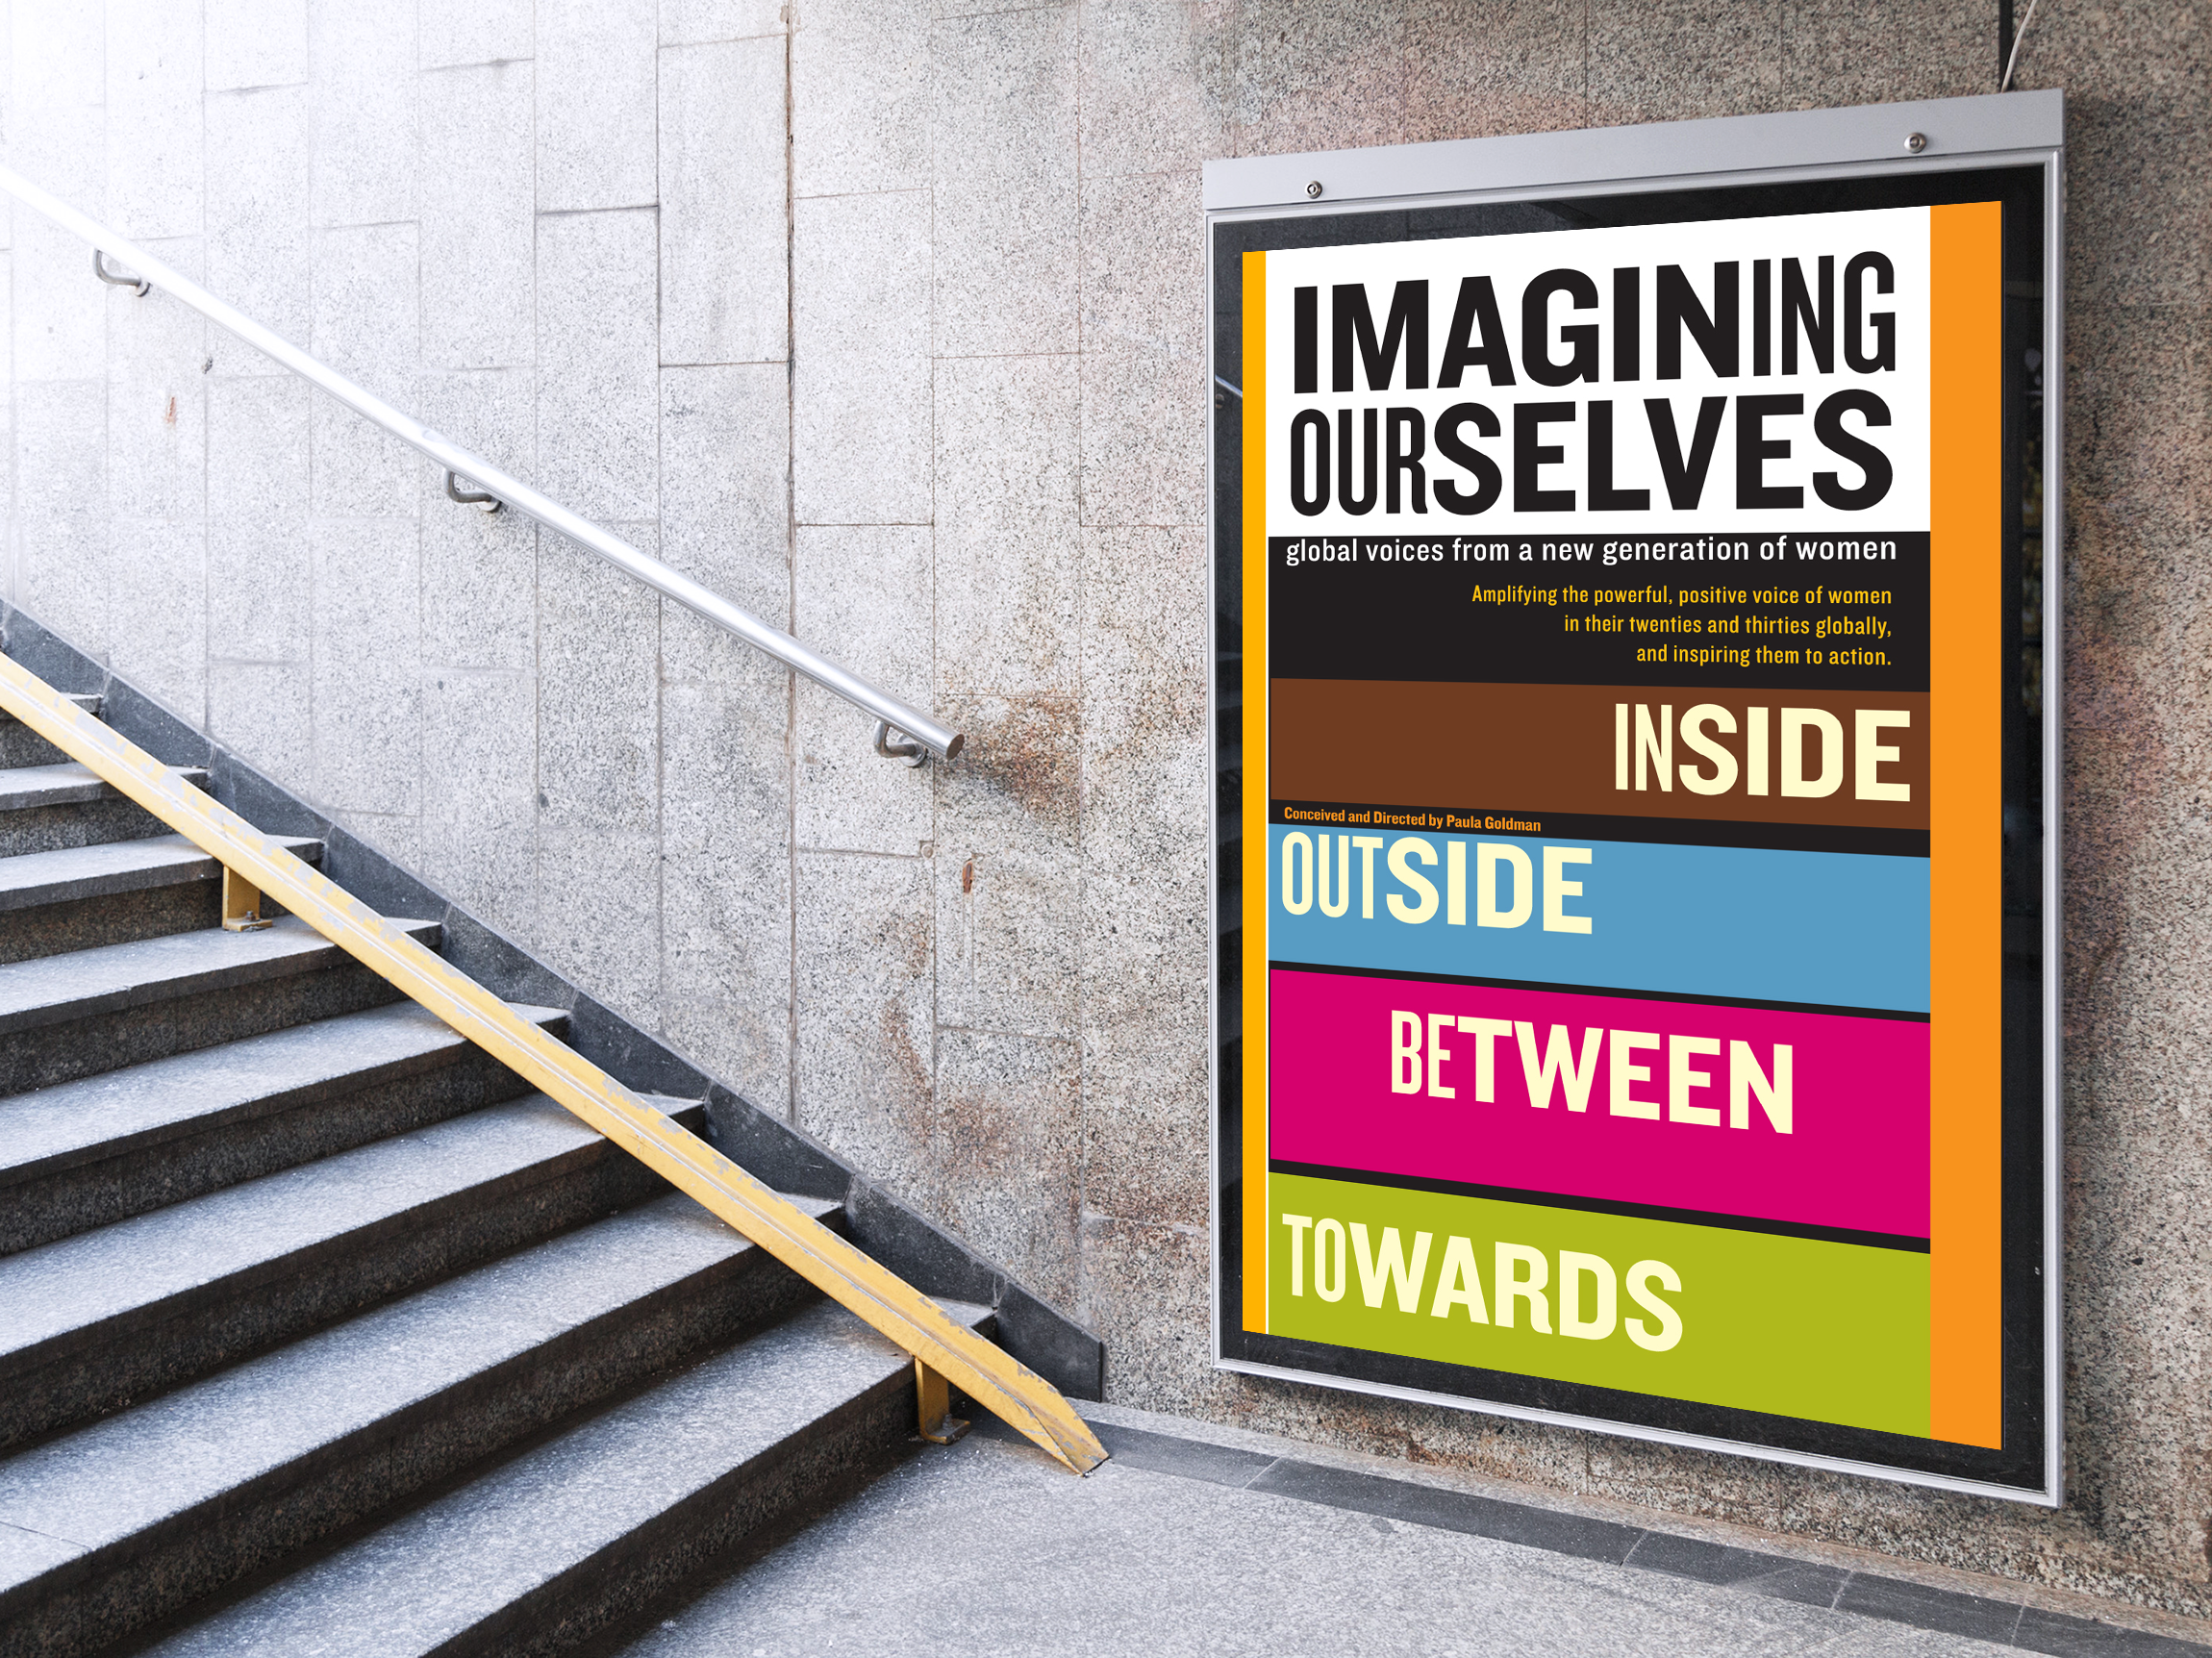 Imagining Ourselves